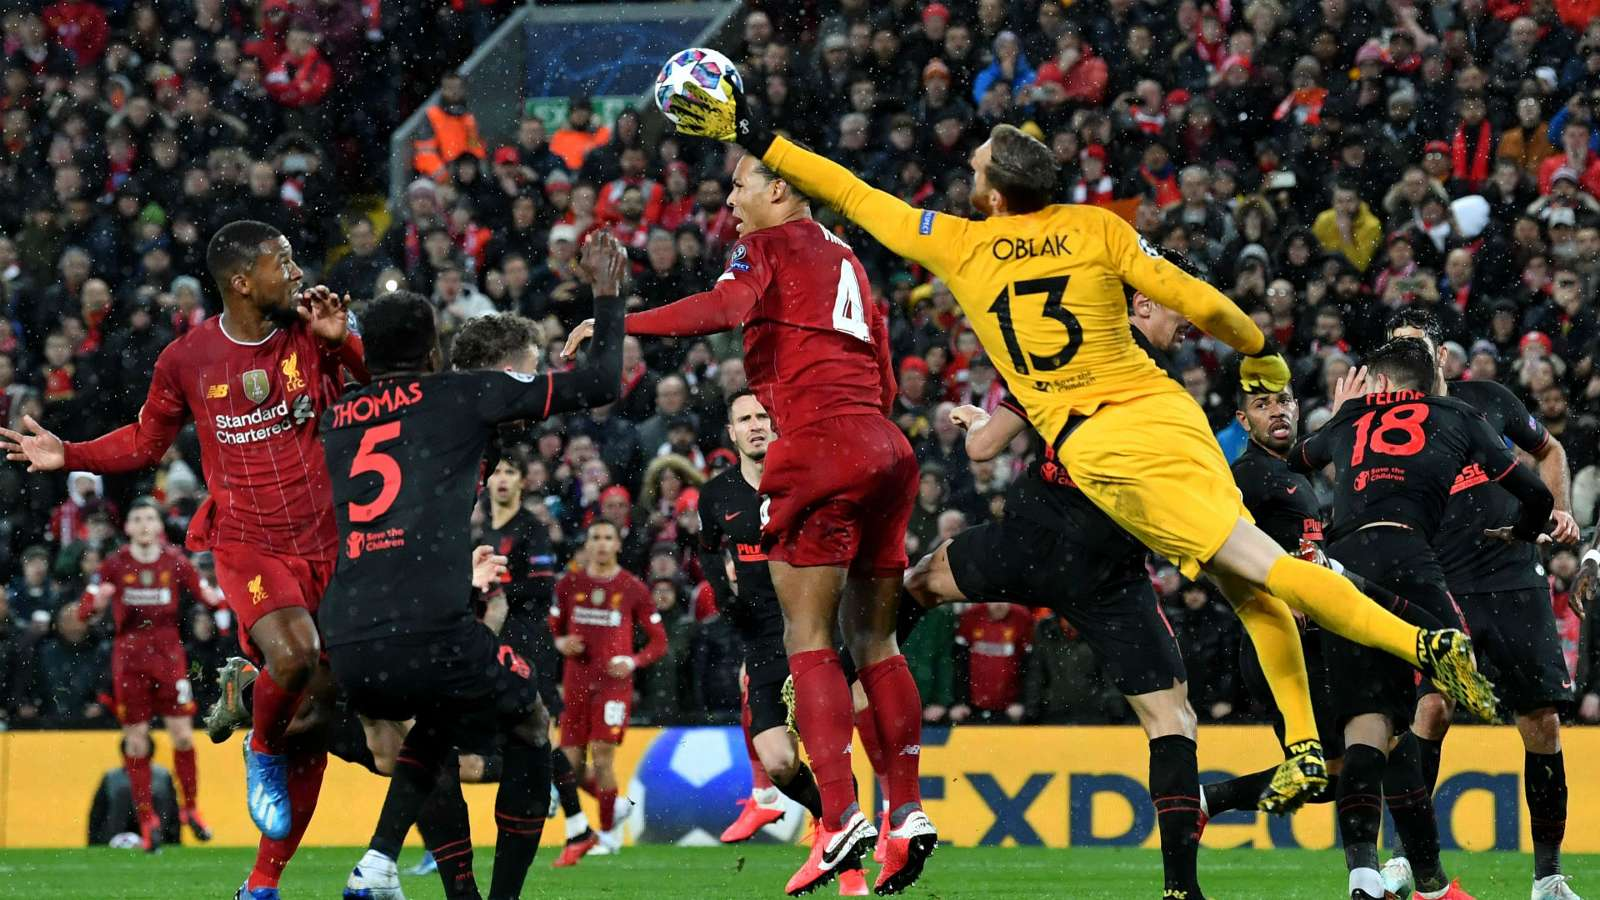 Pertandingan Liverpool Vs Atletico Madrid Bantu Penyebaran Virus Corona?